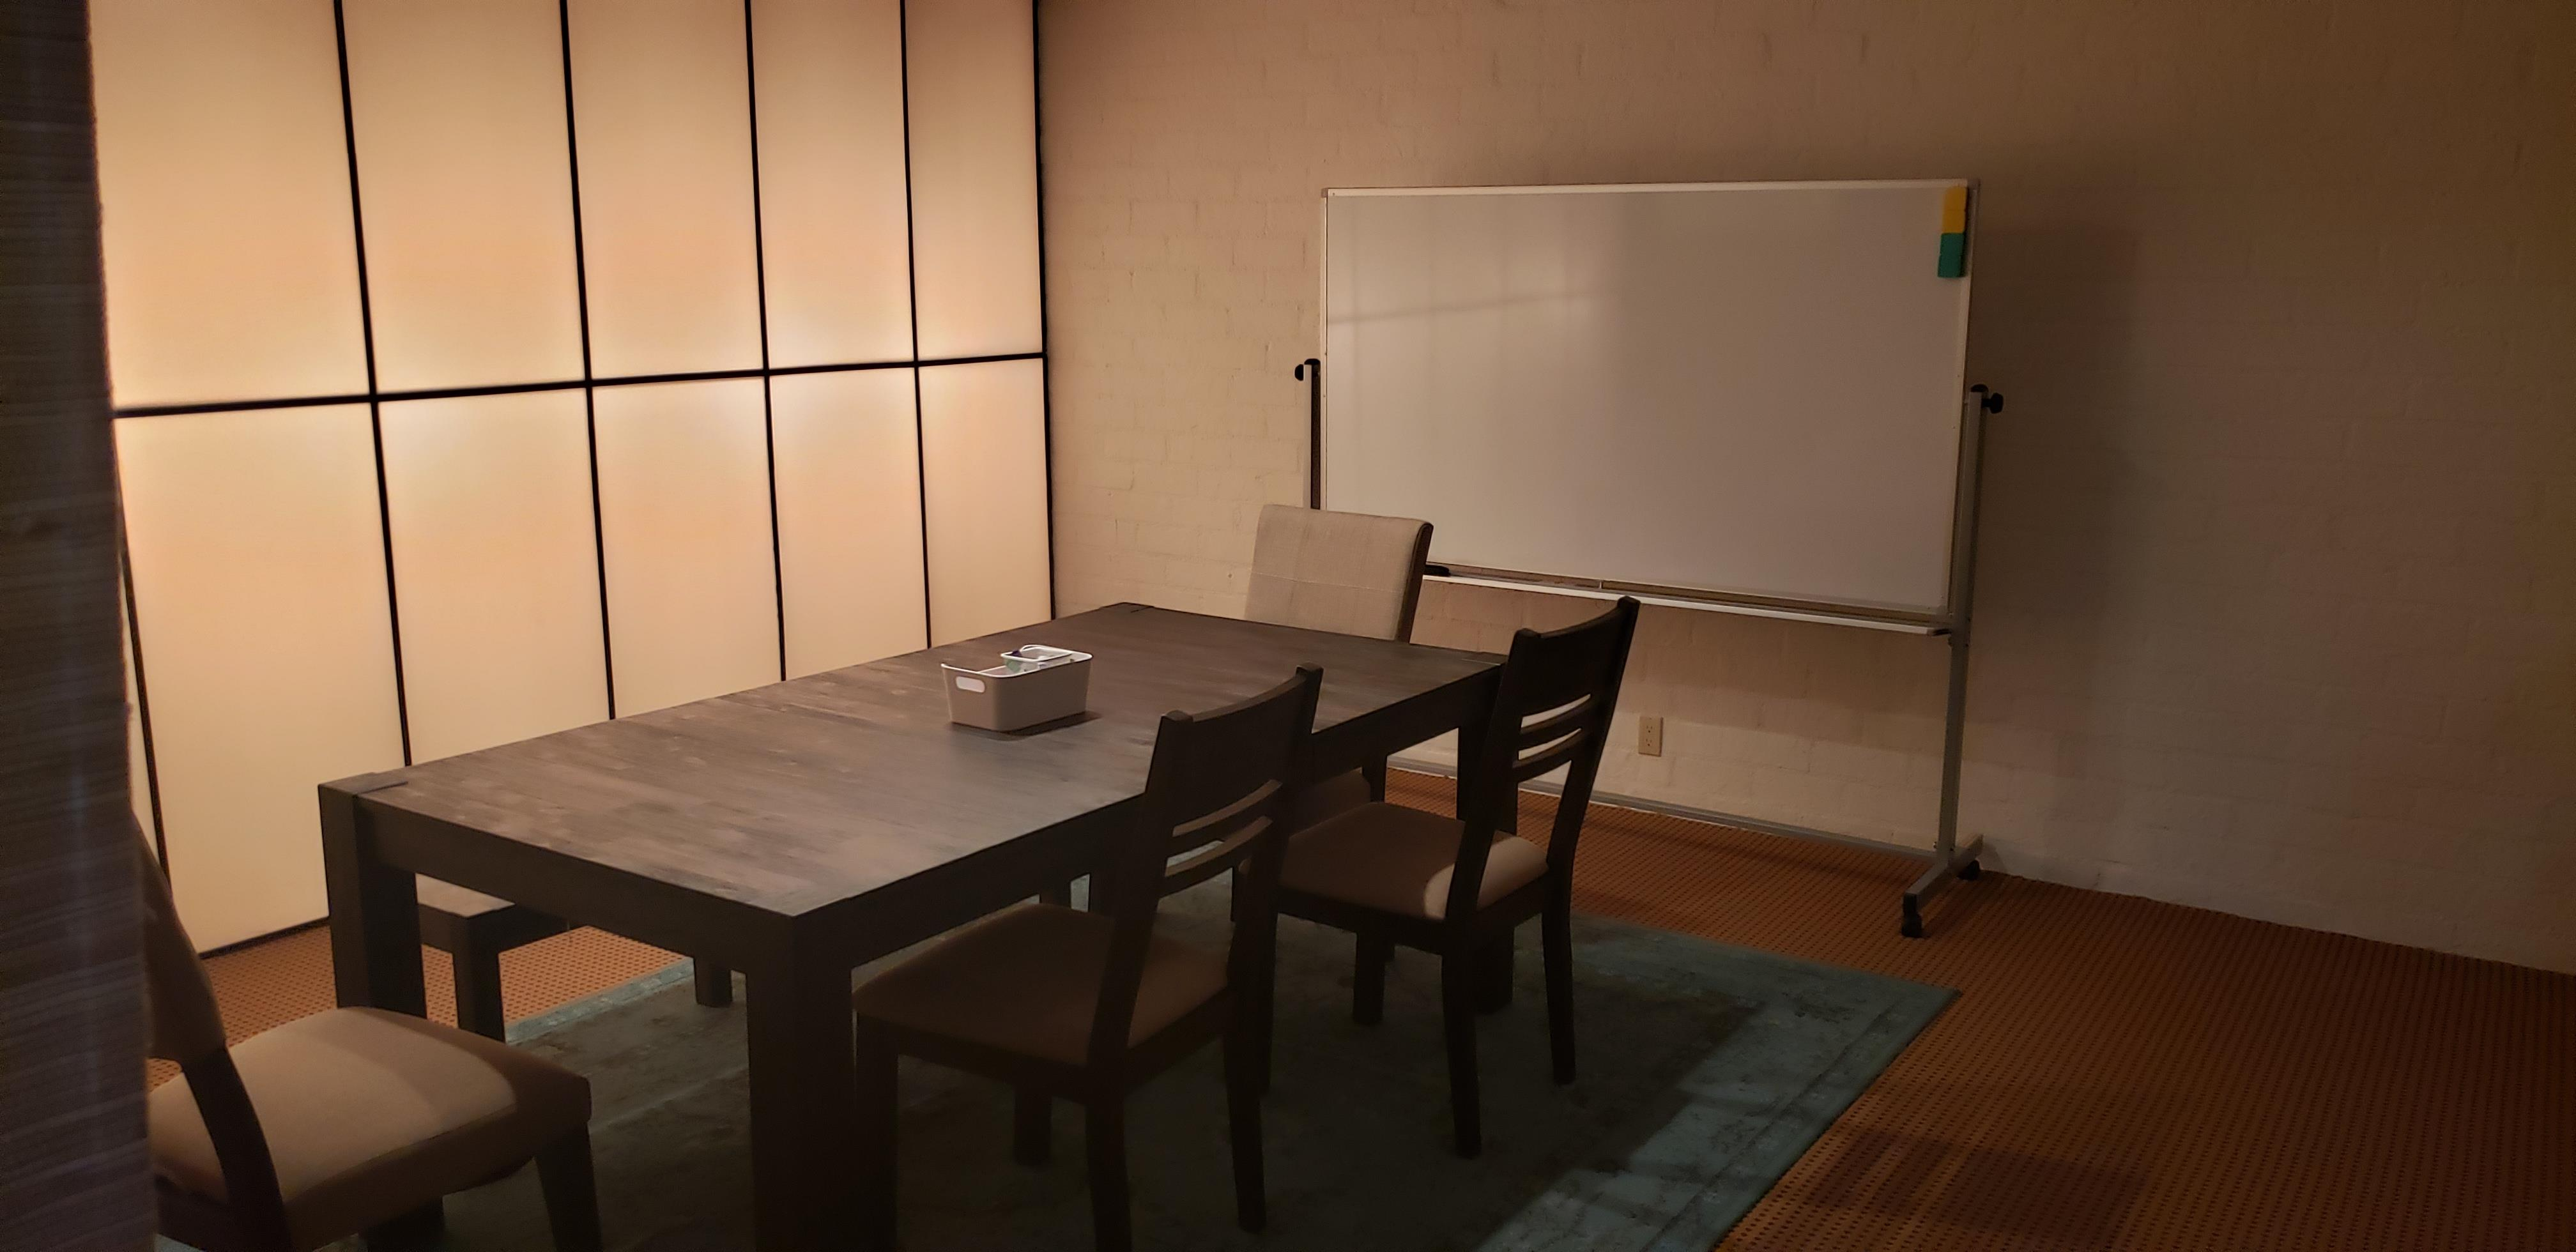 The MEG Space - Meeting Room 3